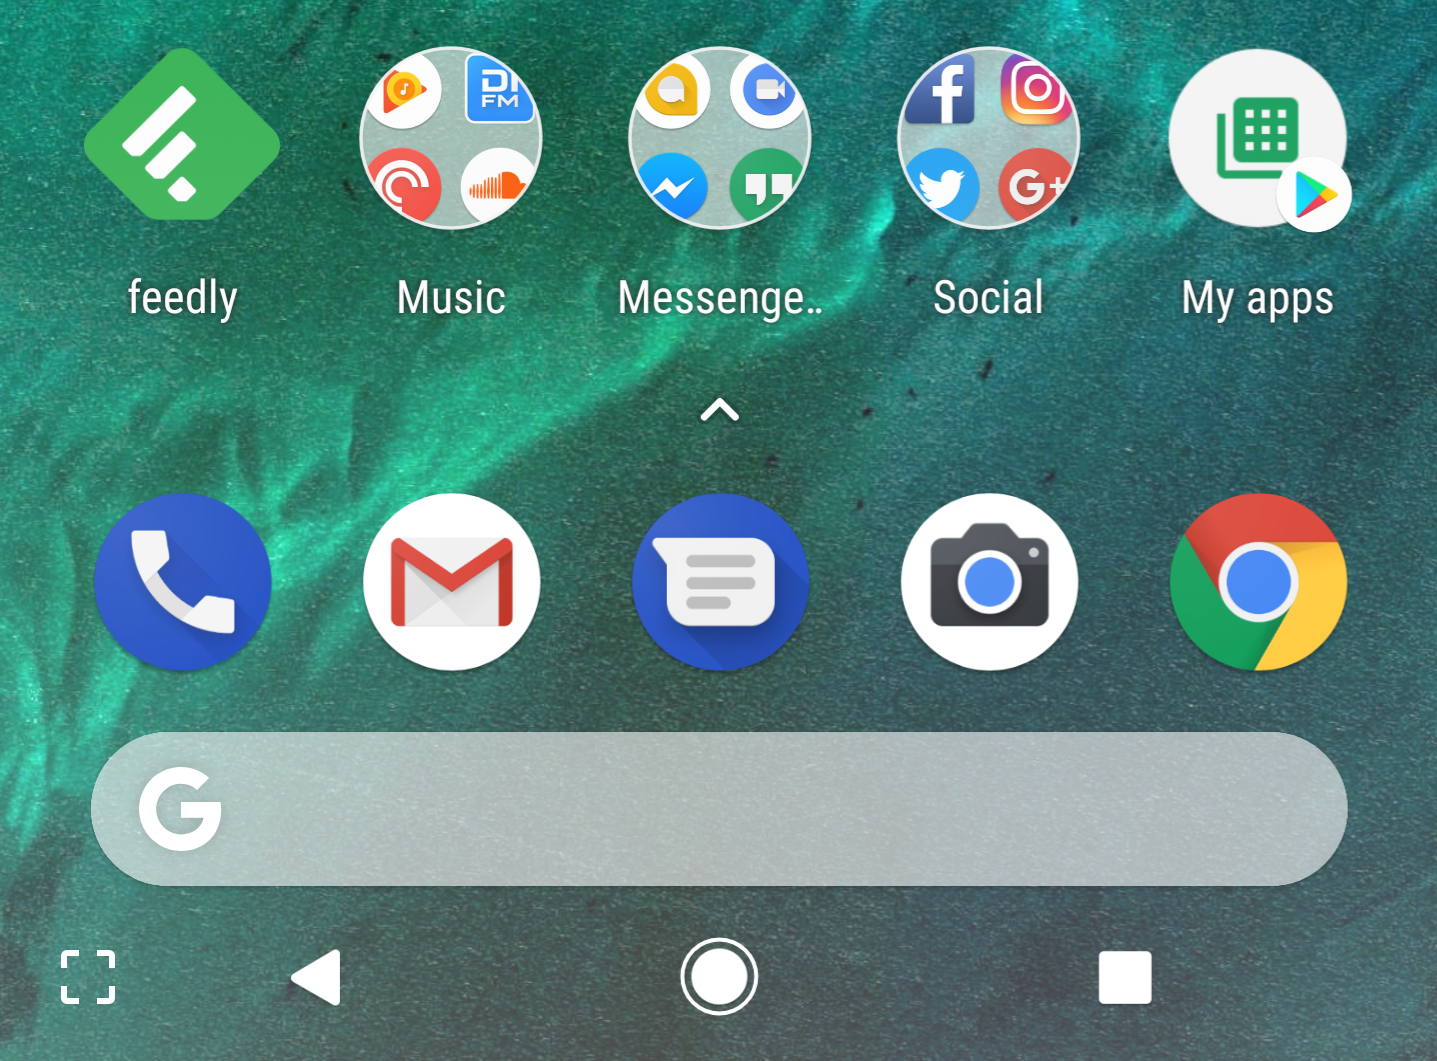 Hands-on with the updated Pixel Launcher, including the new Pixel 2